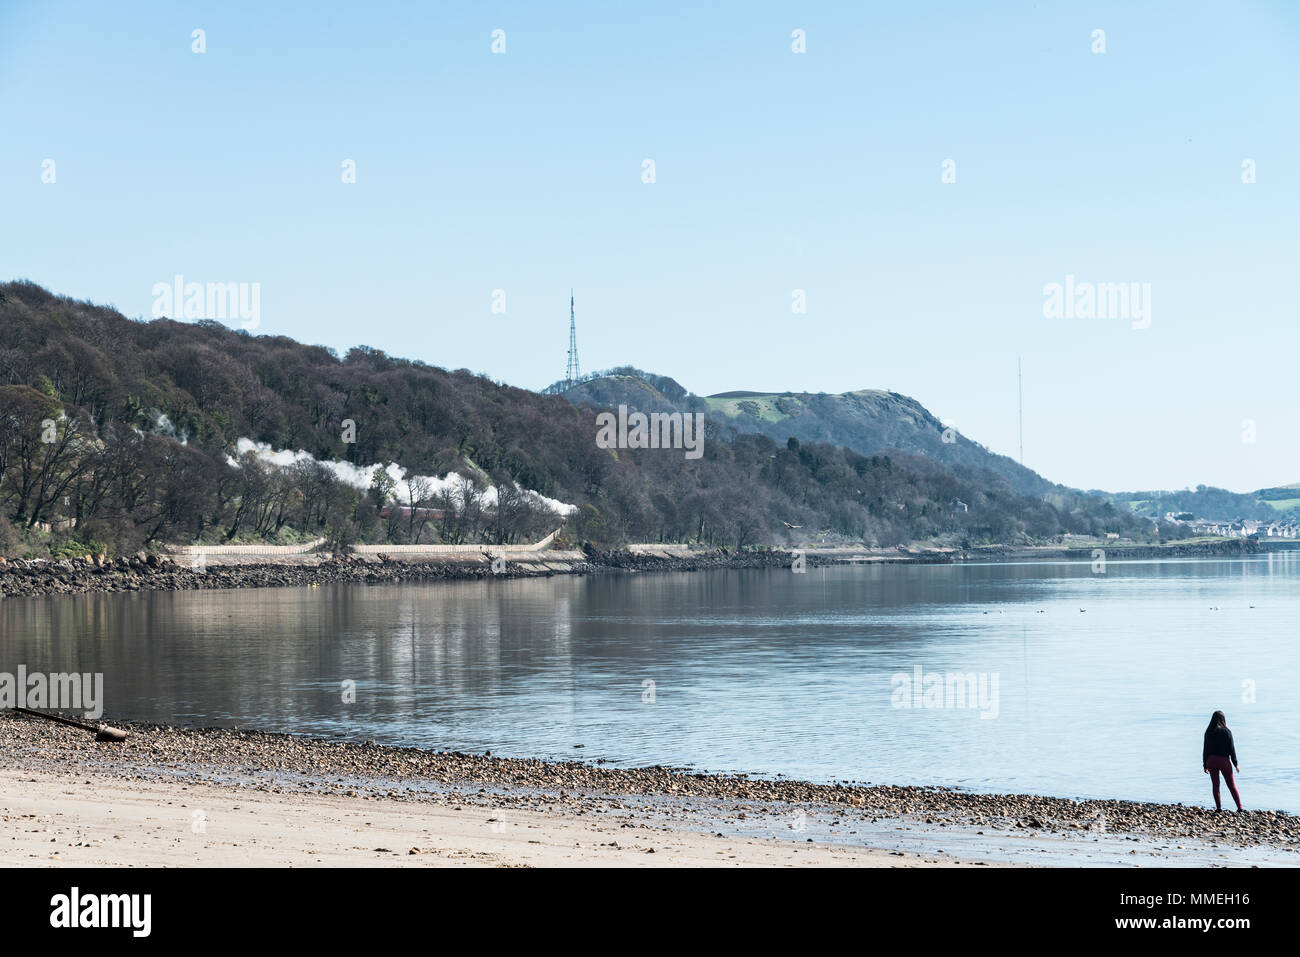 A steam train runs along Silversands Bay, watched by a lone person on the shoreline - Stock Image